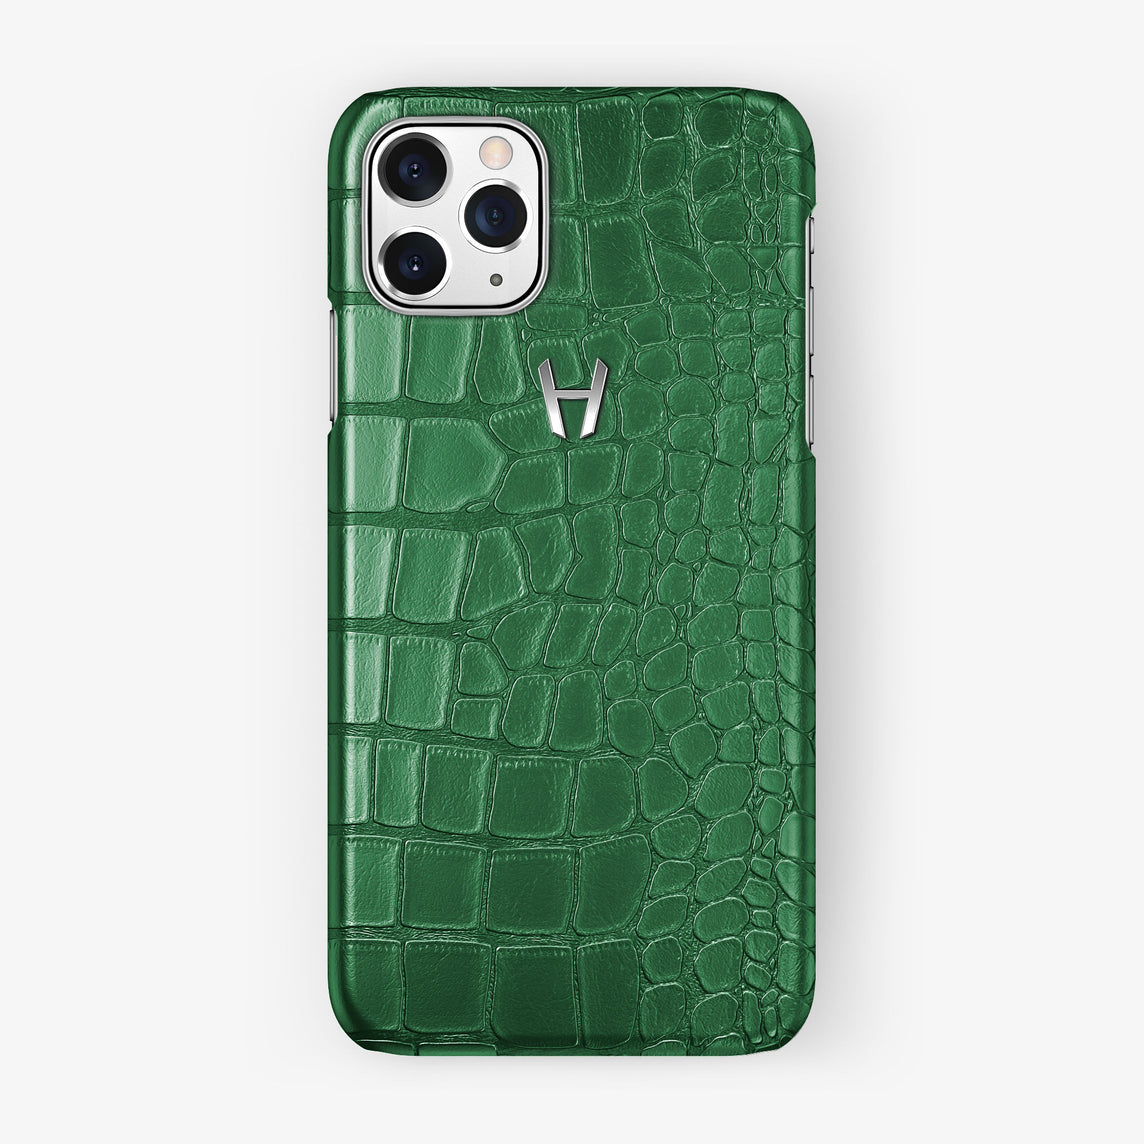 Alligator Case iPhone 11 Pro | Green Emerald - Stainless Steel